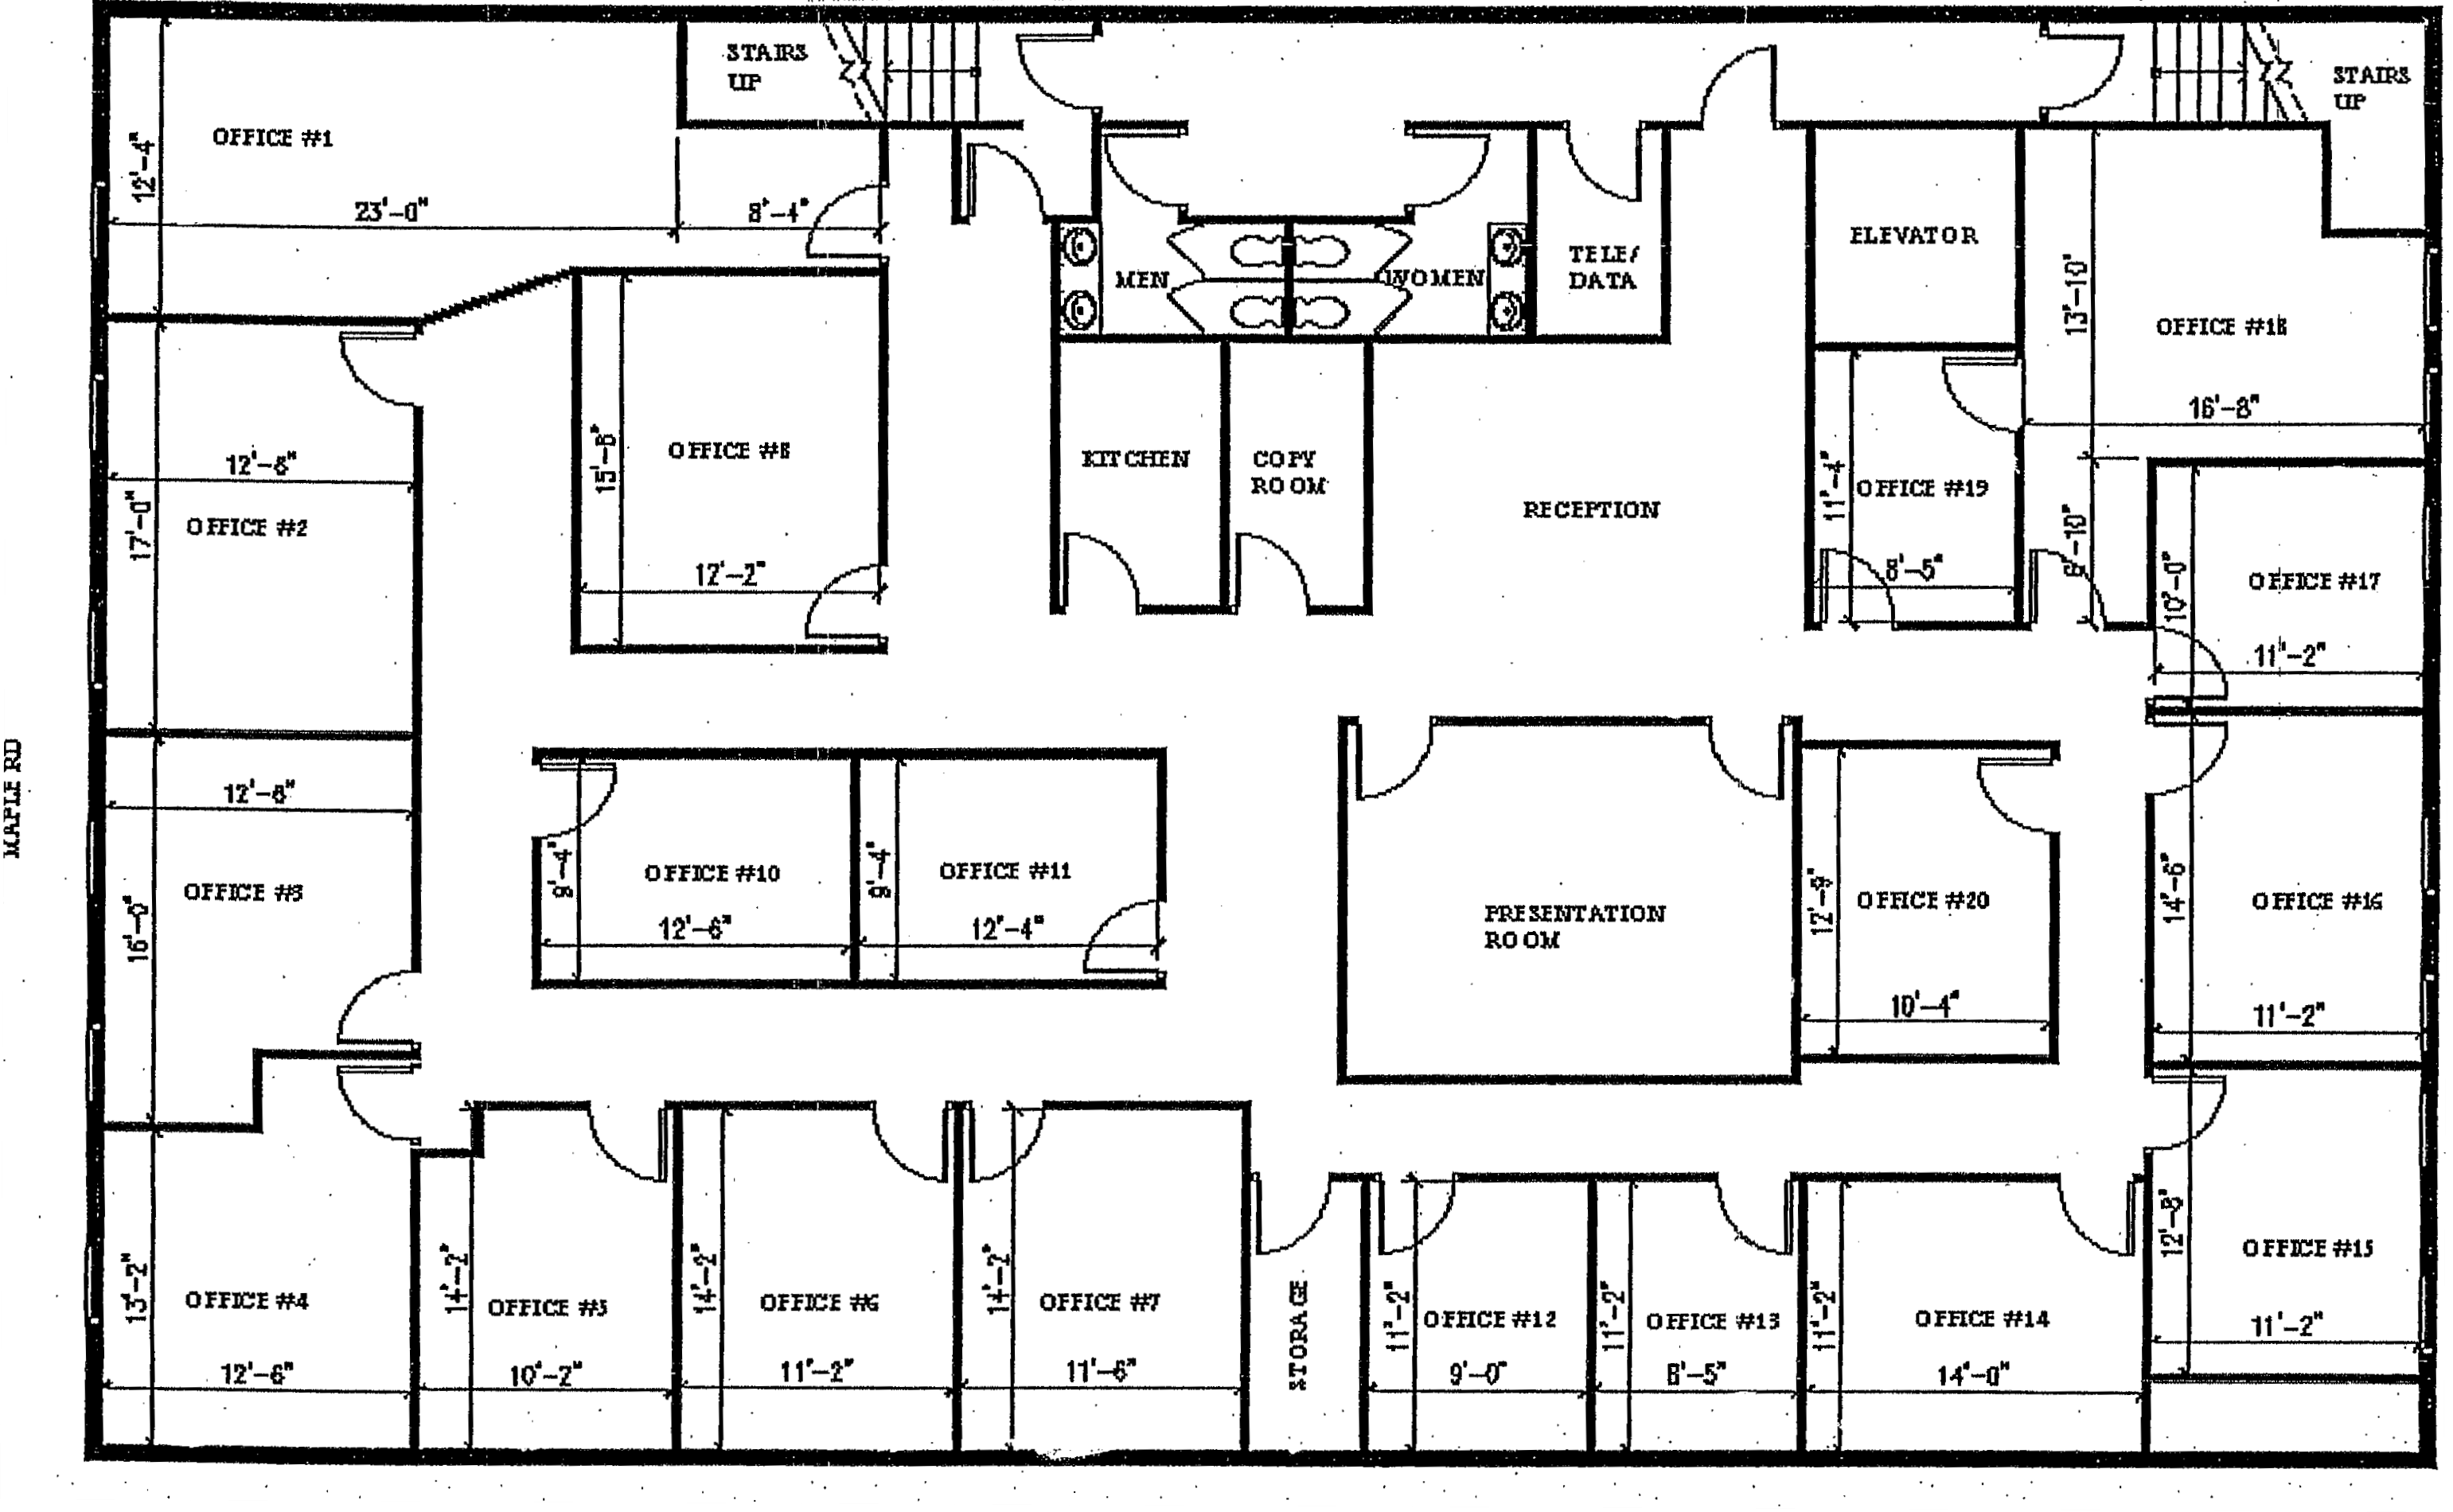 executive office suite floor plan - Google Search | Office ...